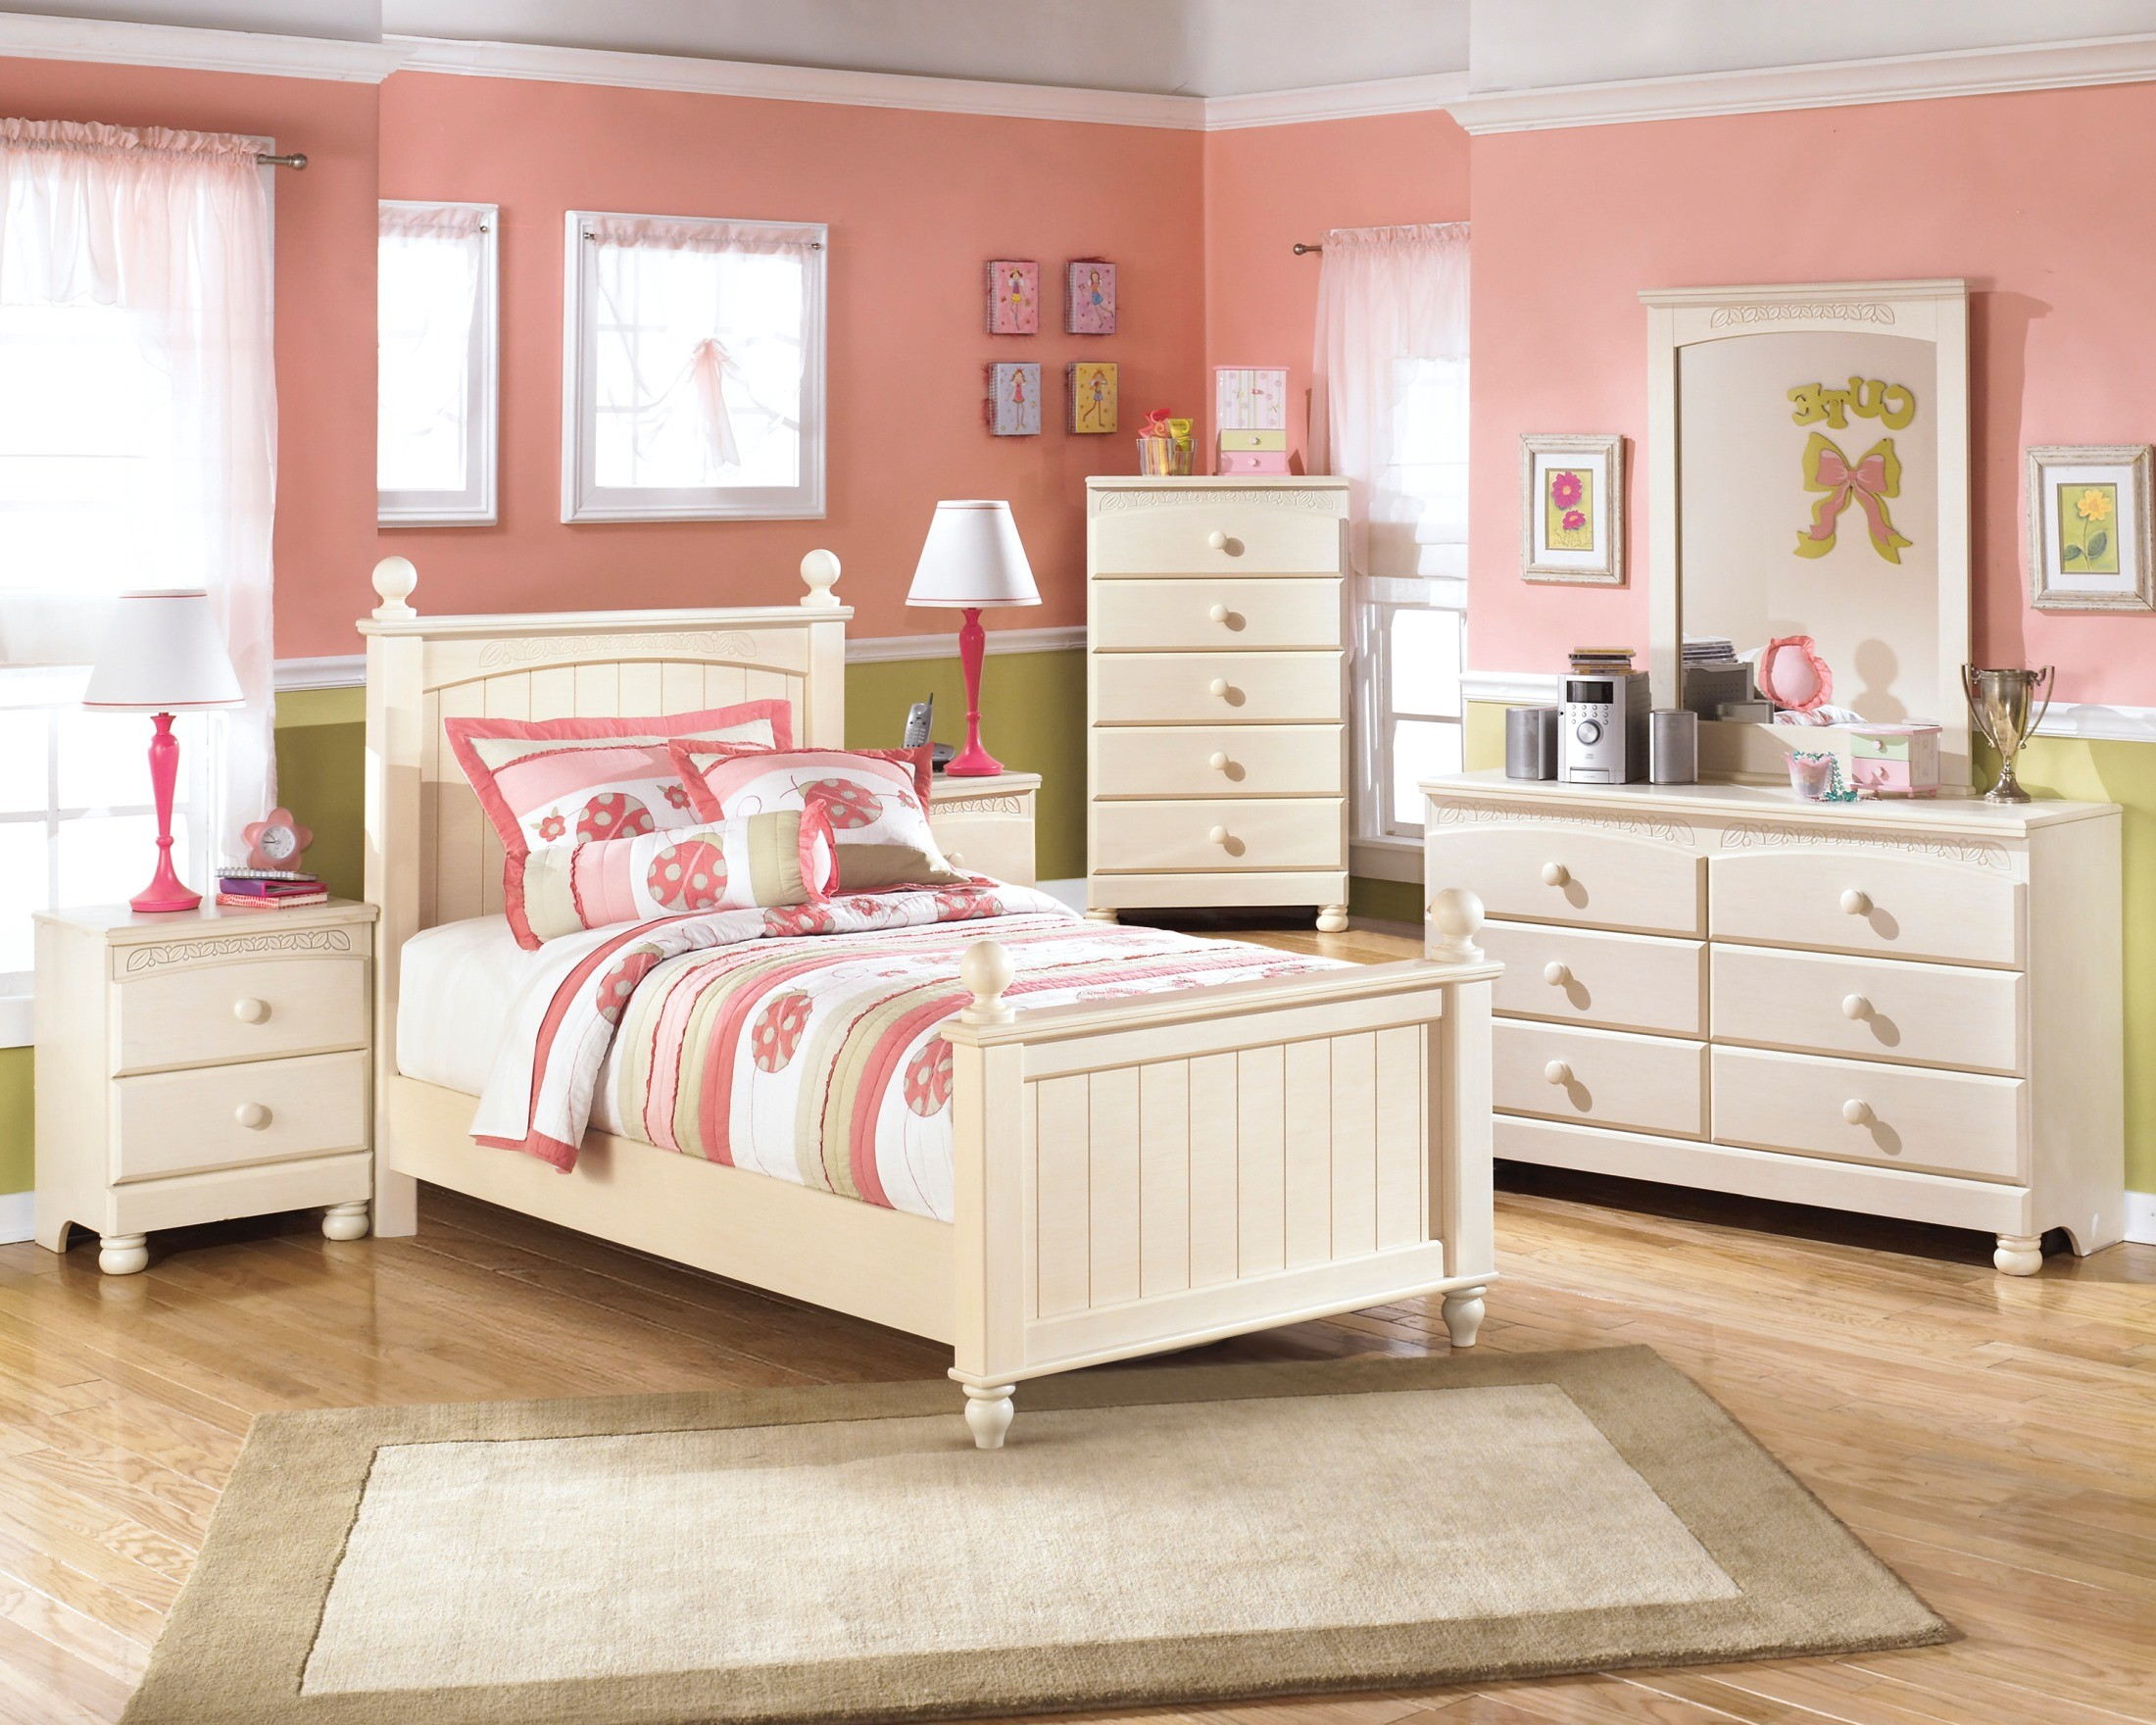 Furniture Cottage Retreat Poster Youth Bedroom Set B213 Kids Bedroom Furniture: cottage retreat bedroom set